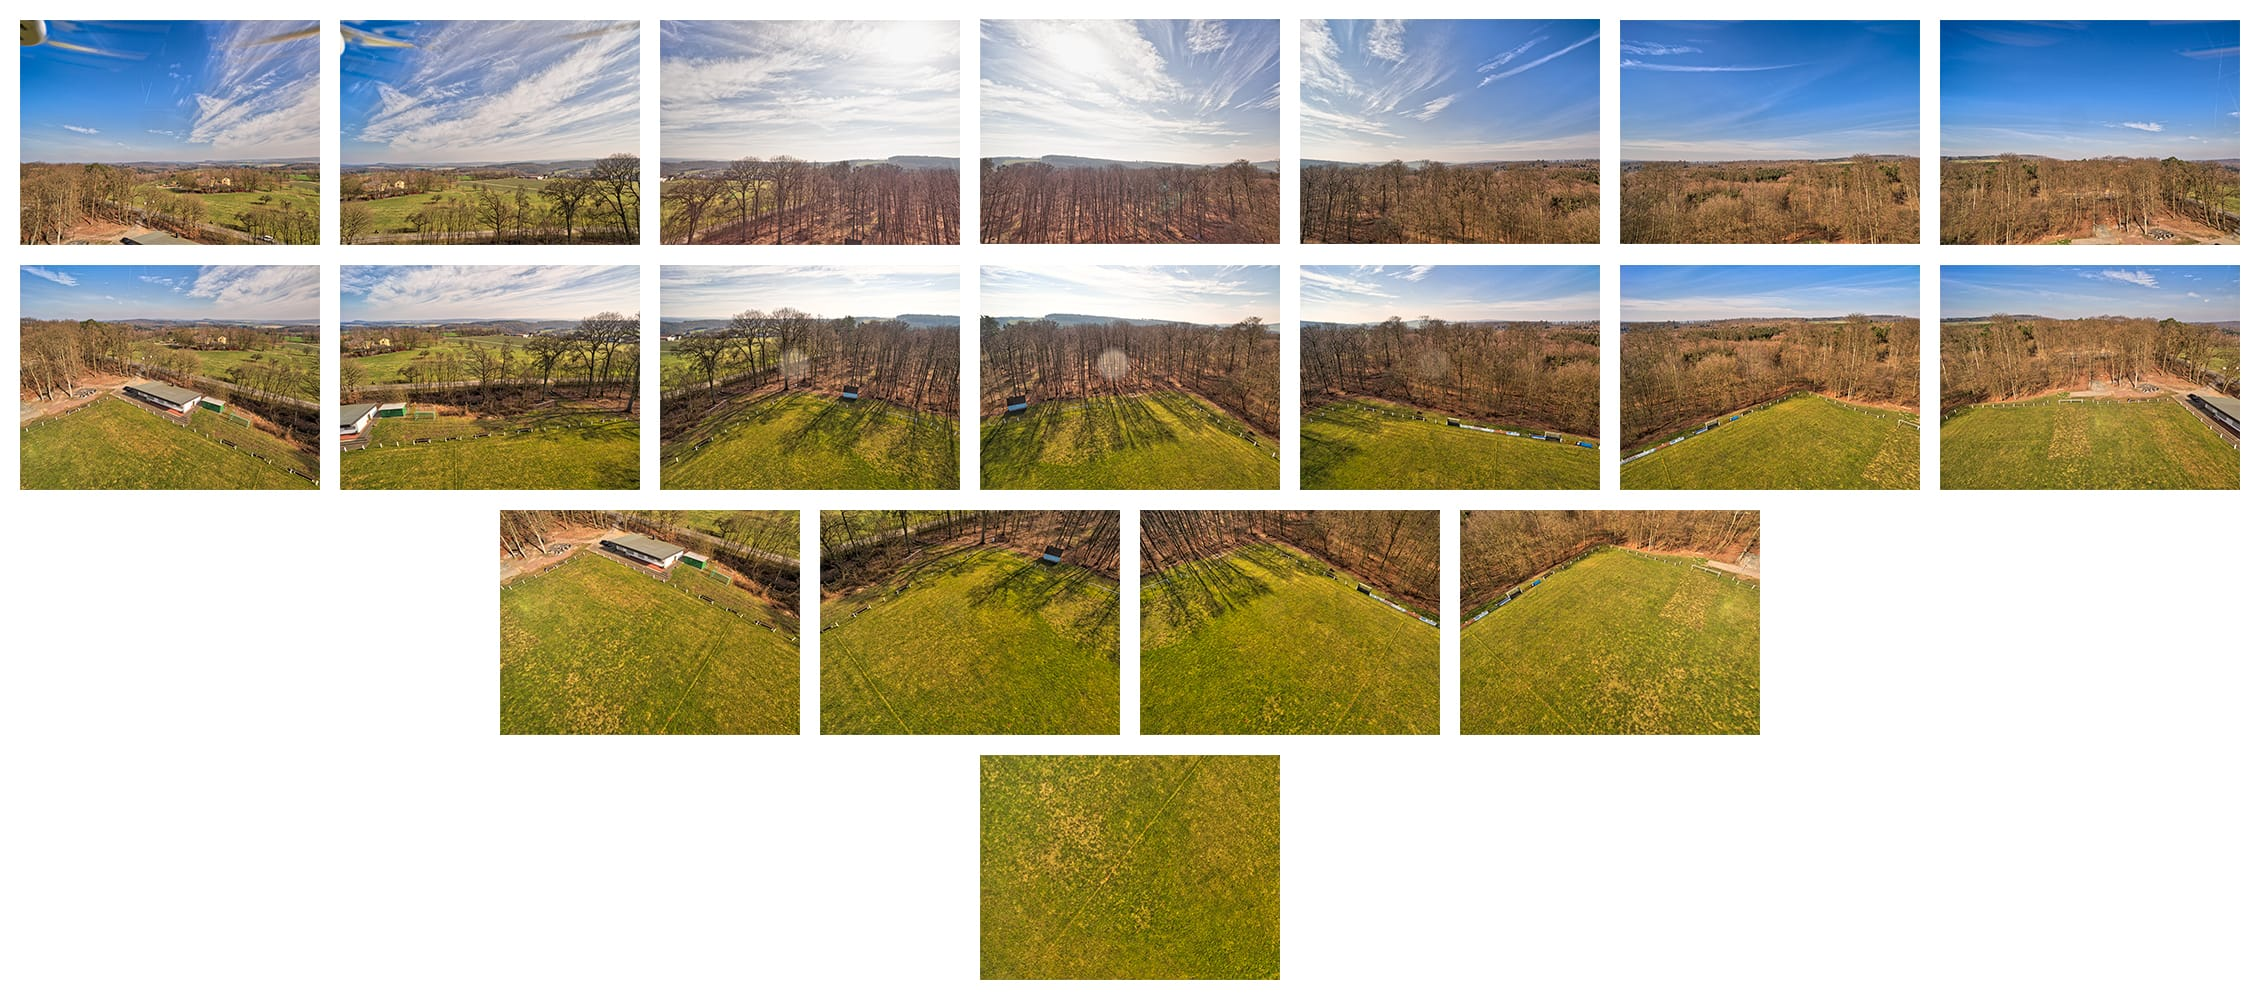 RCPano | How to shoot panorama images